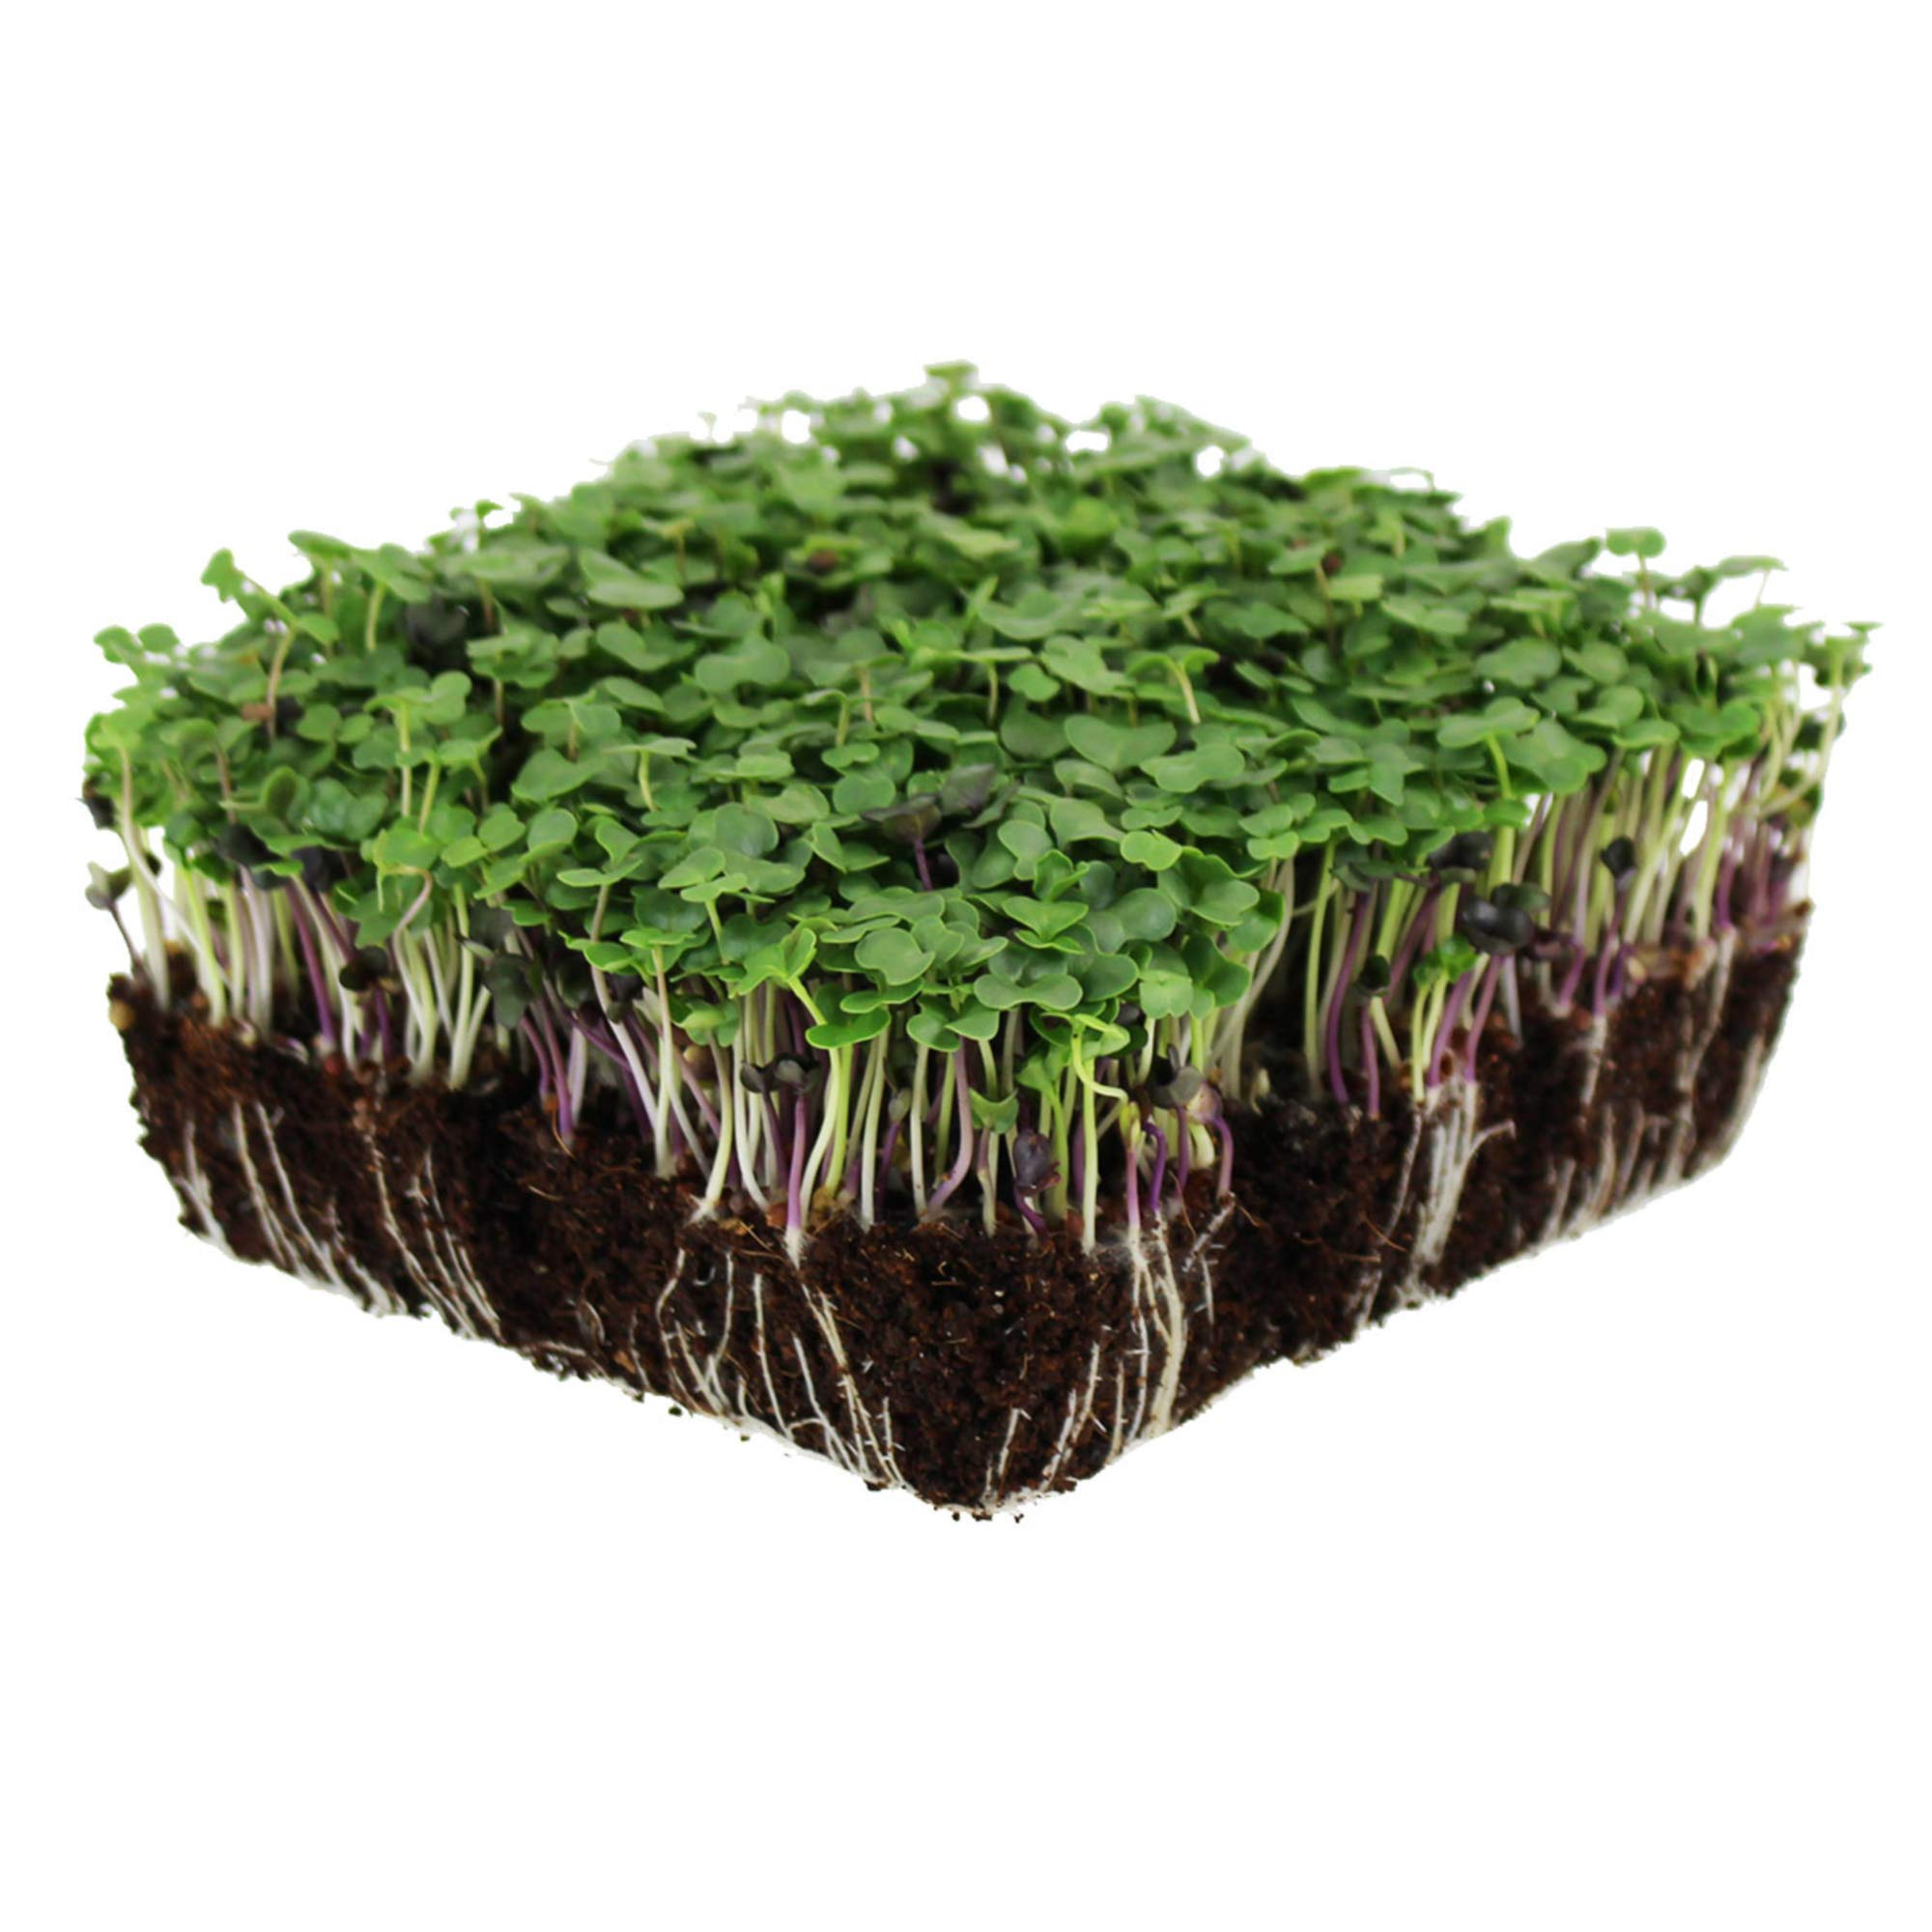 Basic Salad Mix Microgreens Seeds | Non-GMO Micro Green Seed Blend | Broccoli, Kale, Kohlrabi, Cabbage, Arugula, & More (5 Pounds) by Mountain Valley Seed Company